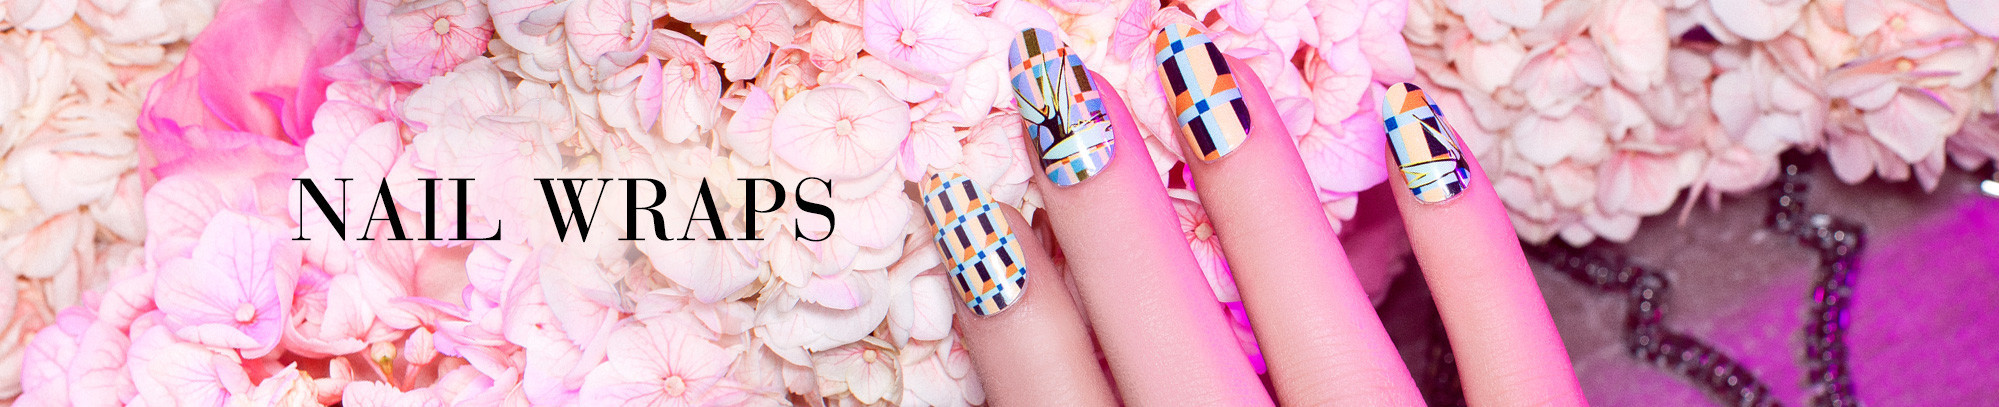 NCLA-COLLECTION-HEADER-NAIL-WRAPS-02_801e36c1-0e08-4159-bcb3-38d0530a98f2